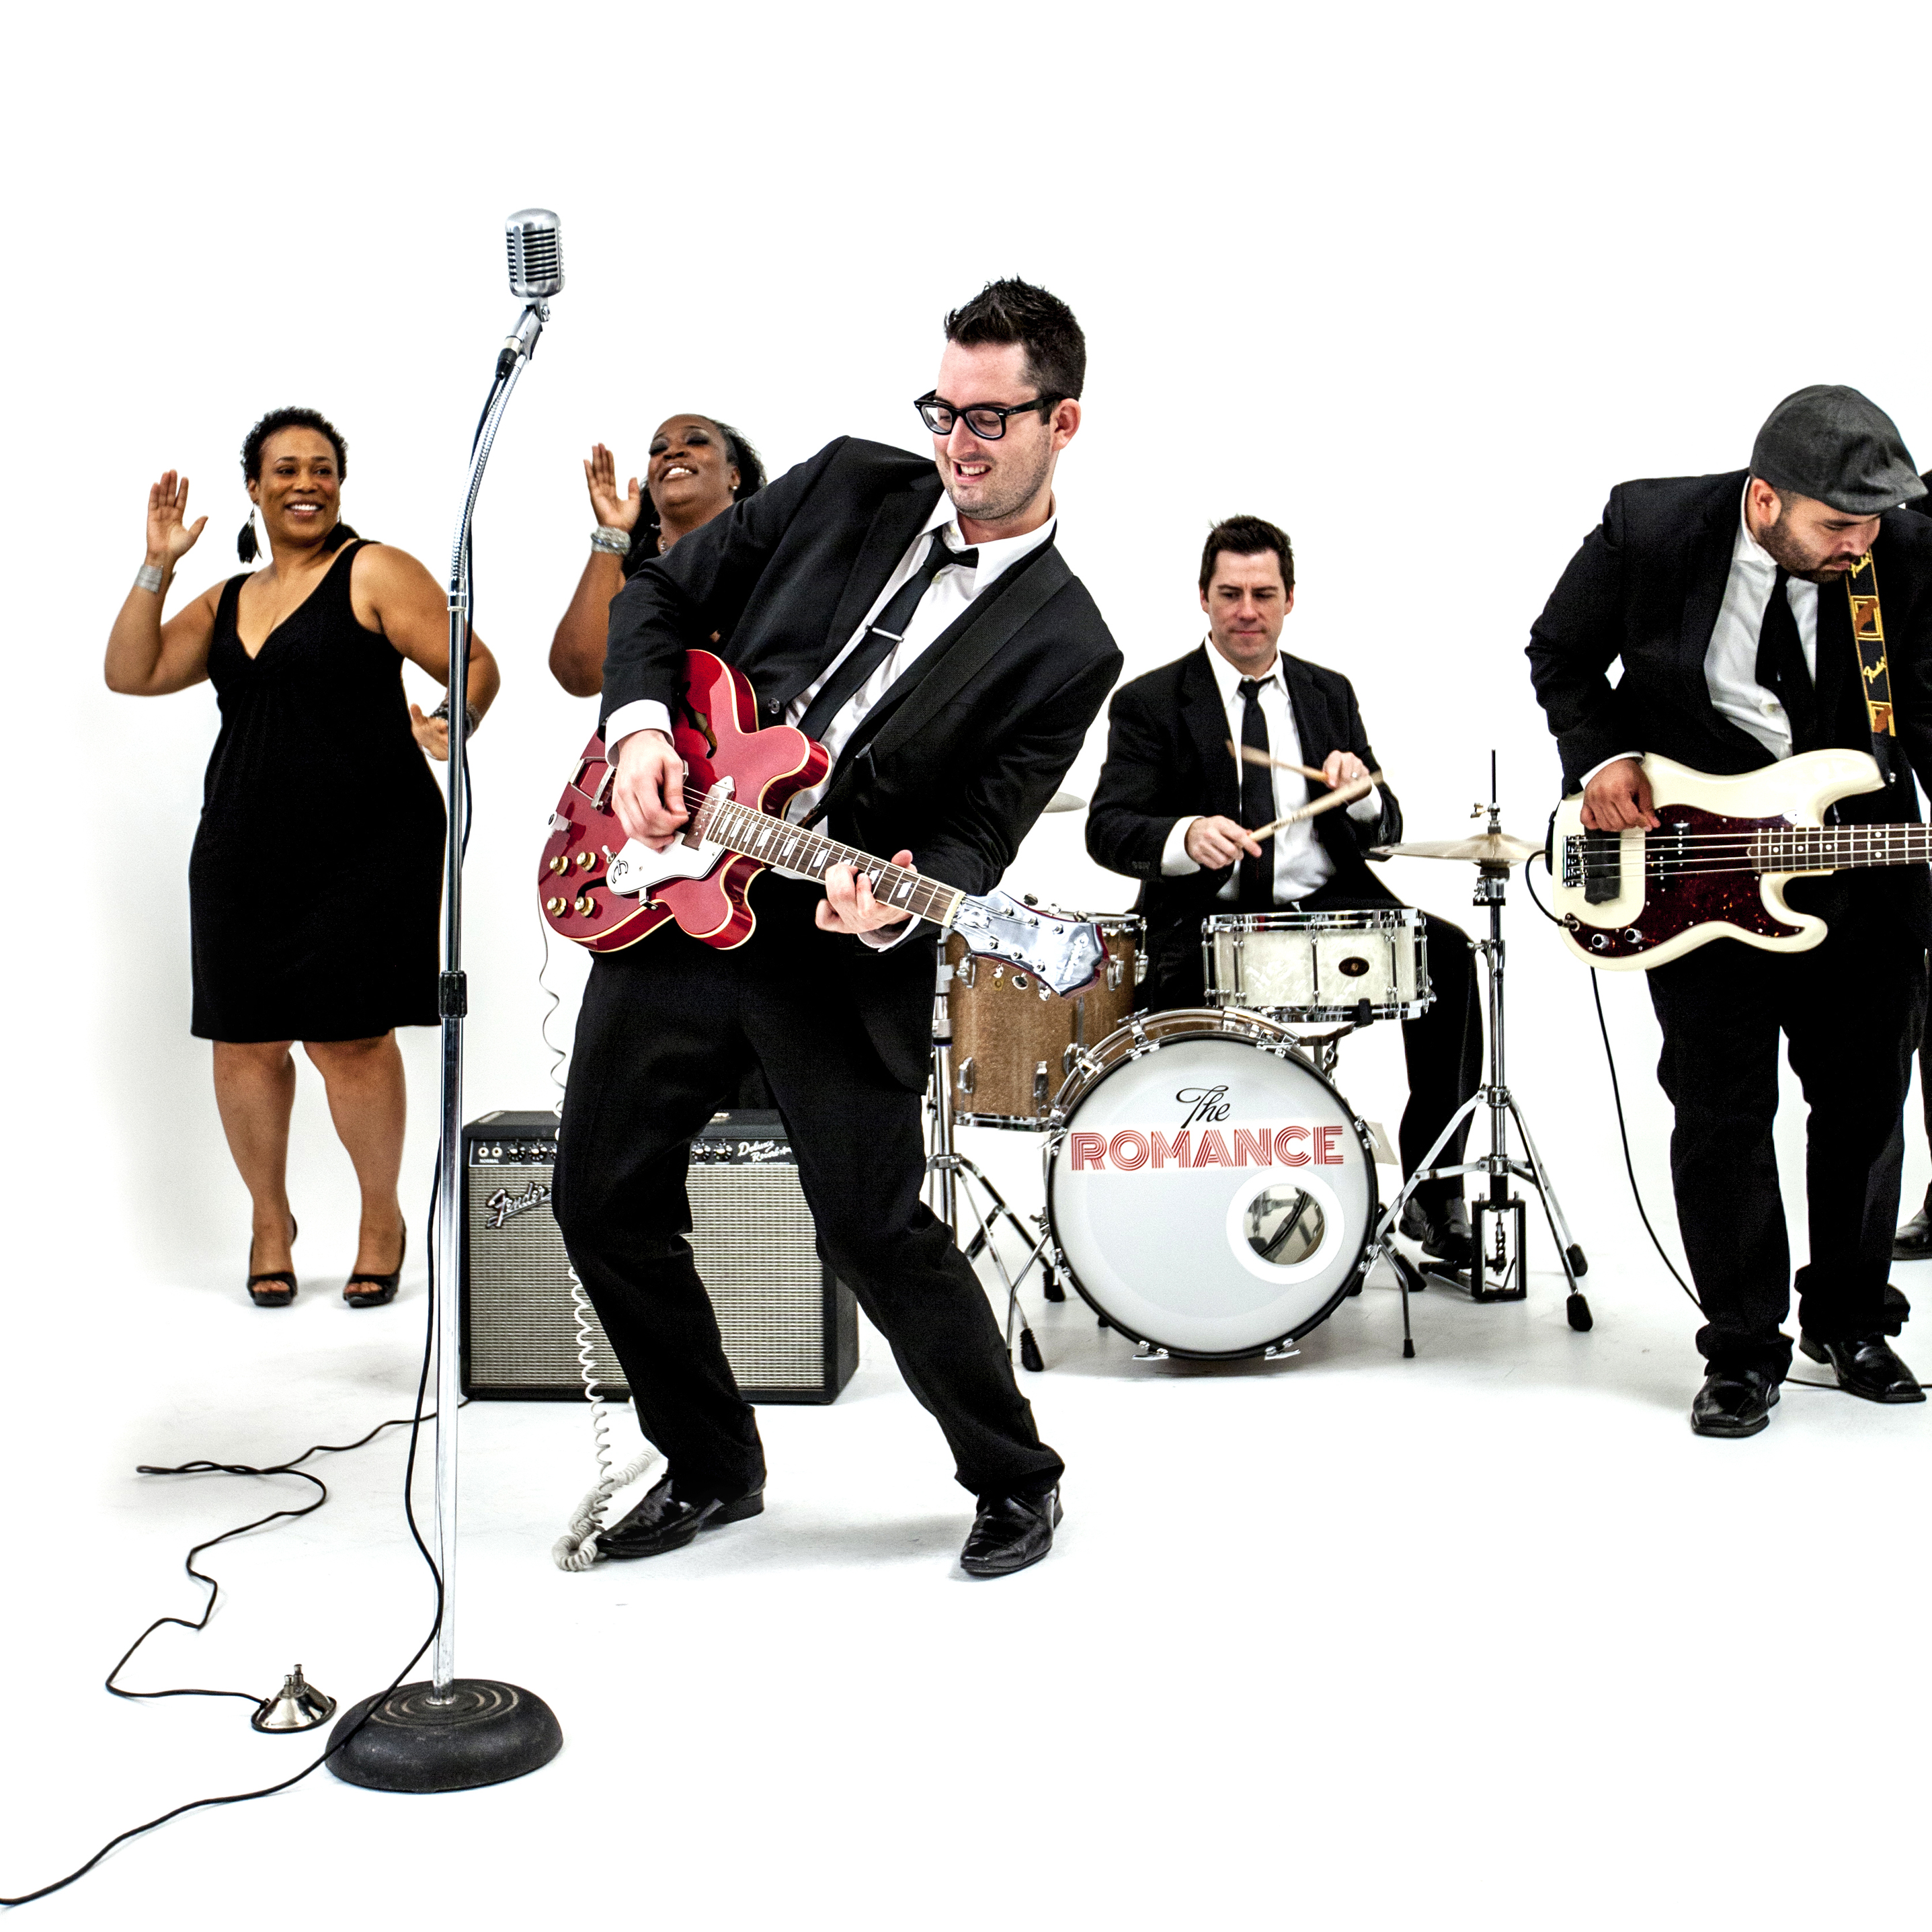 Matt Stansberry & The Romance